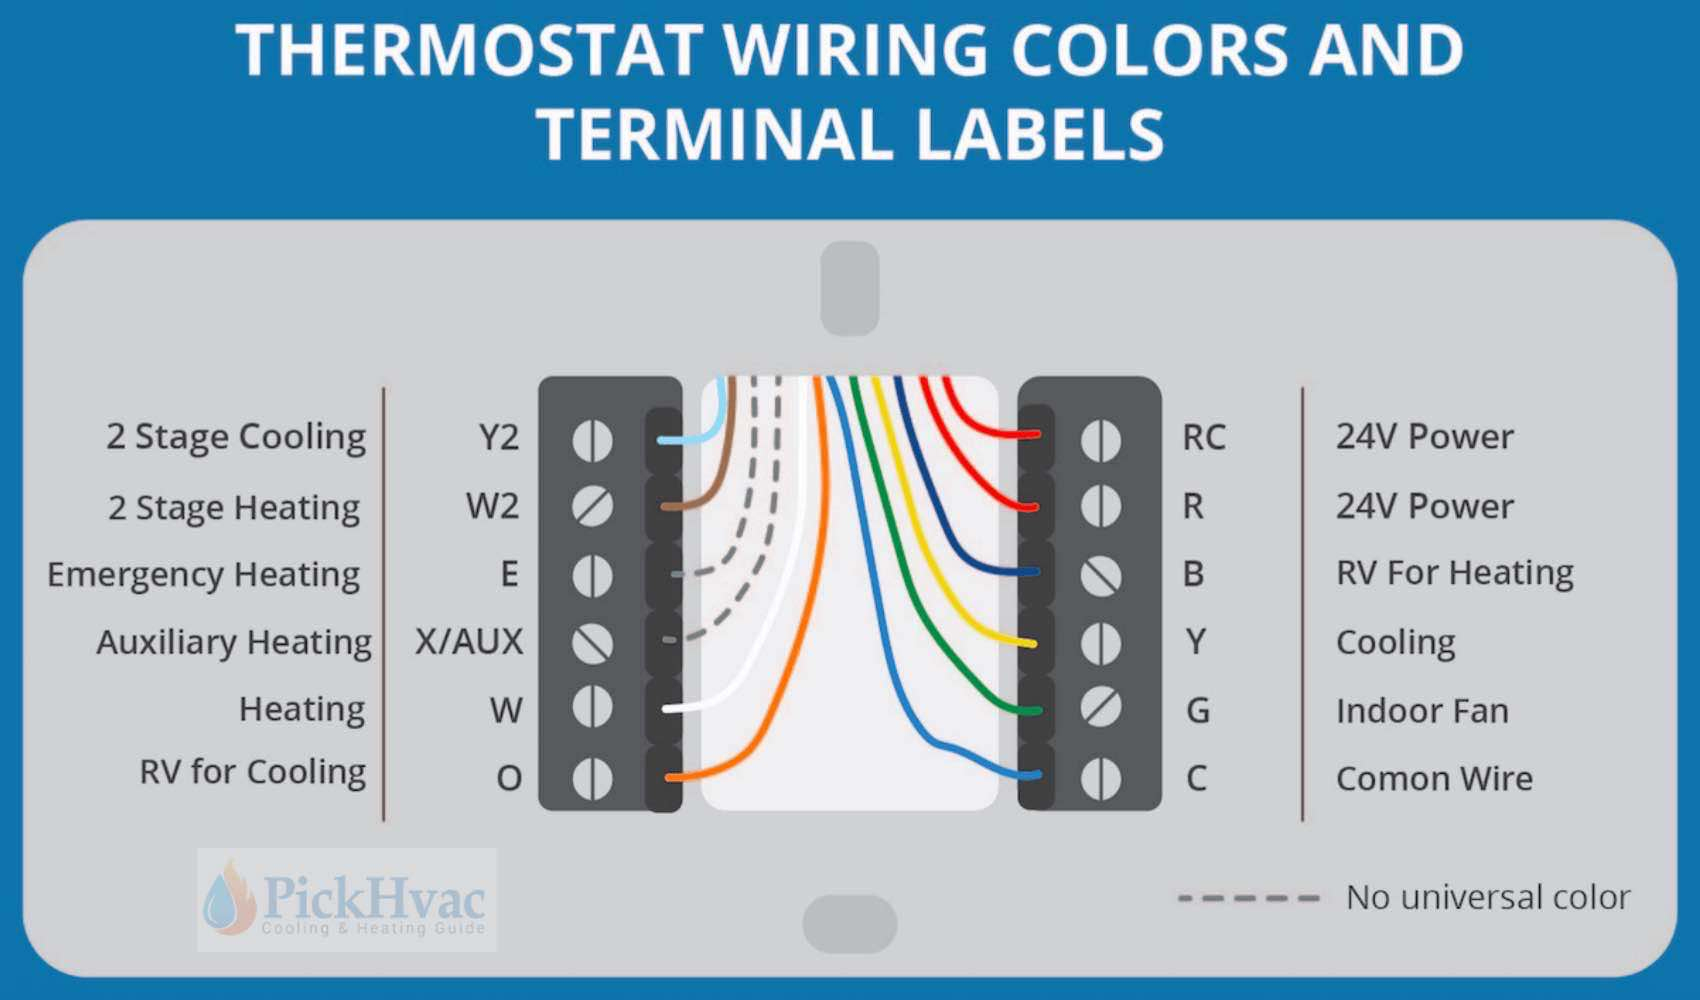 In-Depth Thermostat Wiring Guide For Homeowners - Nest Humidifier Wiring Diagram With No C Terminal